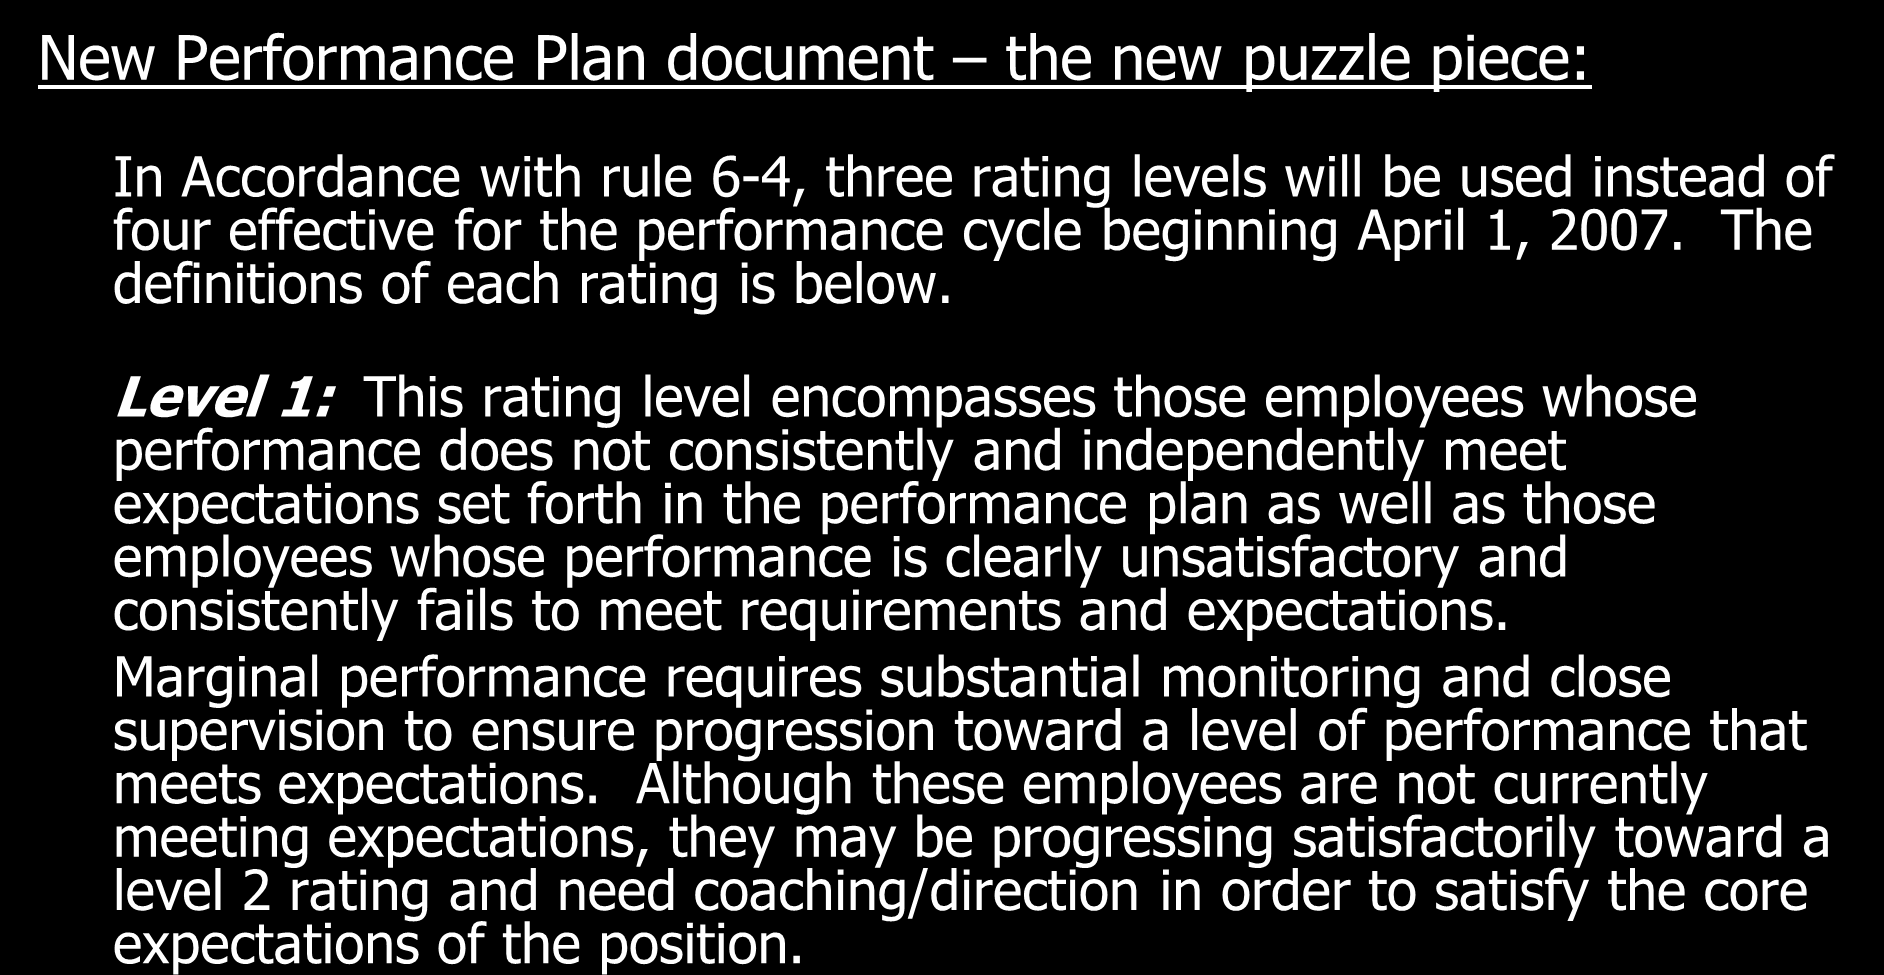 New Performance Plan document the new puzzle piece: In Accordance with rule 6-4, three rating levels will be used instead of four effective for the performance cycle beginning April 1, 2007.